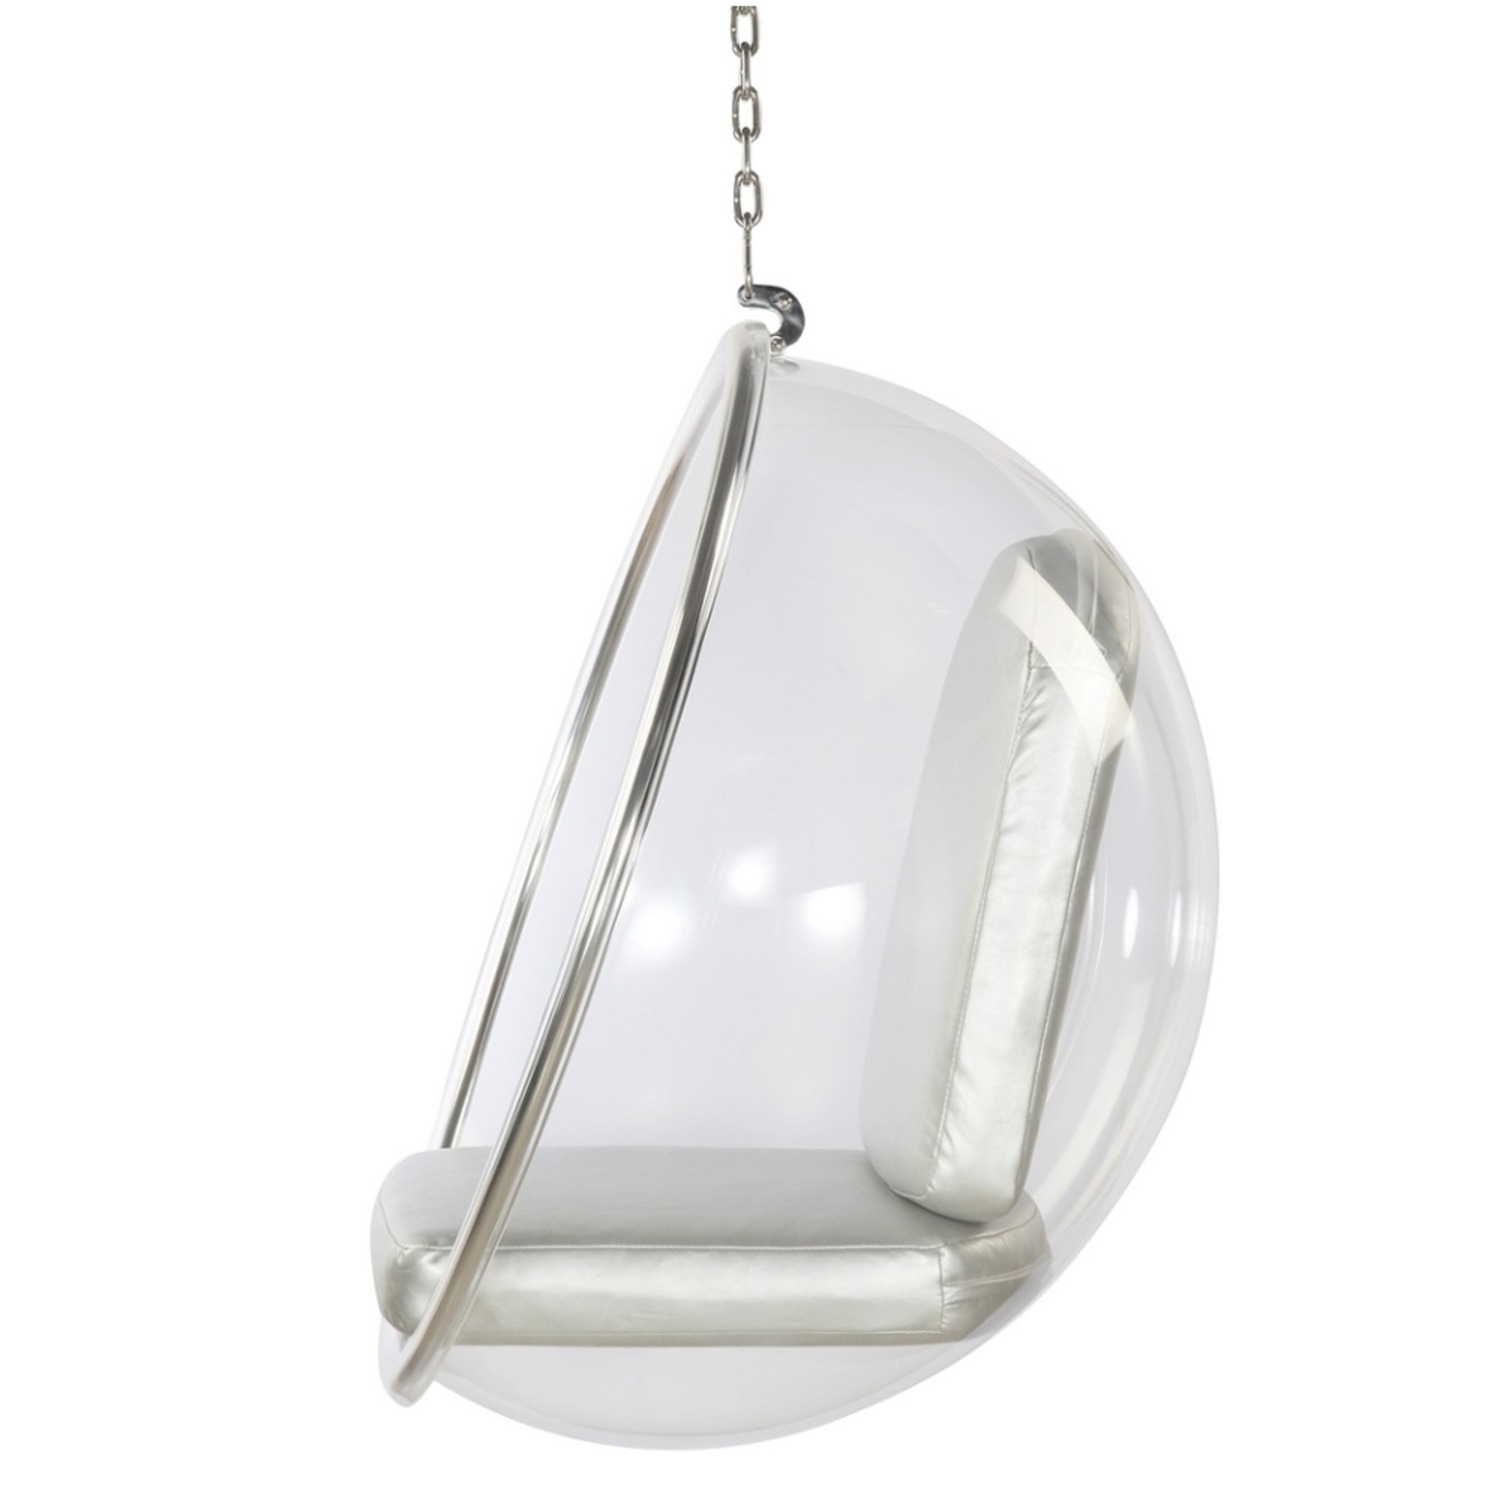 Hanging Chair In Clear Acrylic & Silver PU Leather - image-3